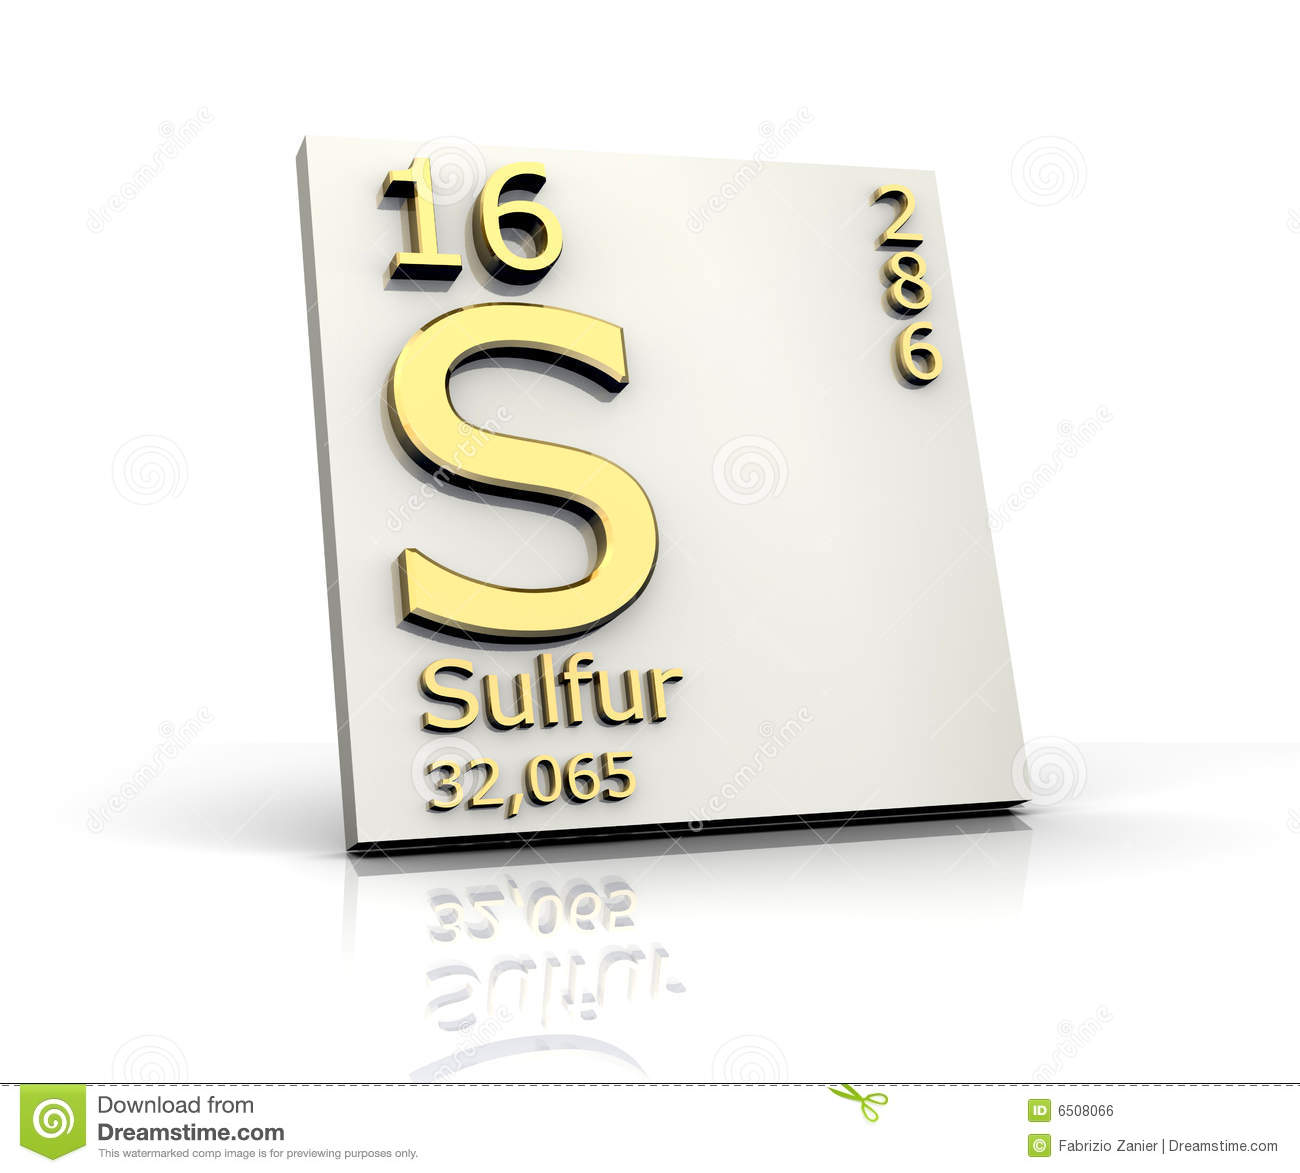 Dech Telluric Tube likewise Iron Man Frontsmall as well Sulfur Form Periodic Table Elements likewise Porphyrin additionally Px P Phosphorus. on periodic table in chemistry